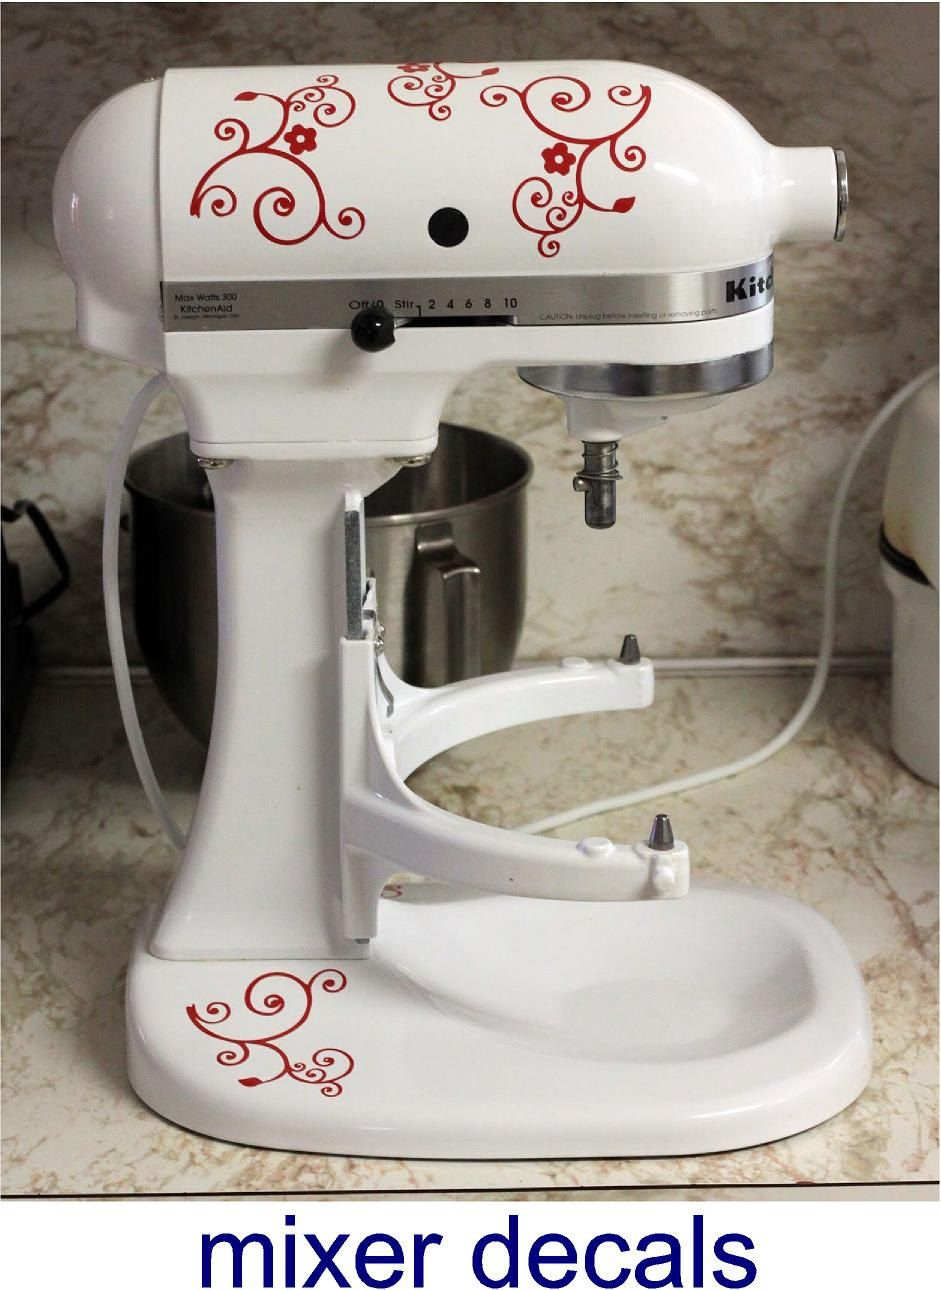 kitchenaid kitchen mixer vinyl decals swirl and flower 6 75 via rh pinterest com